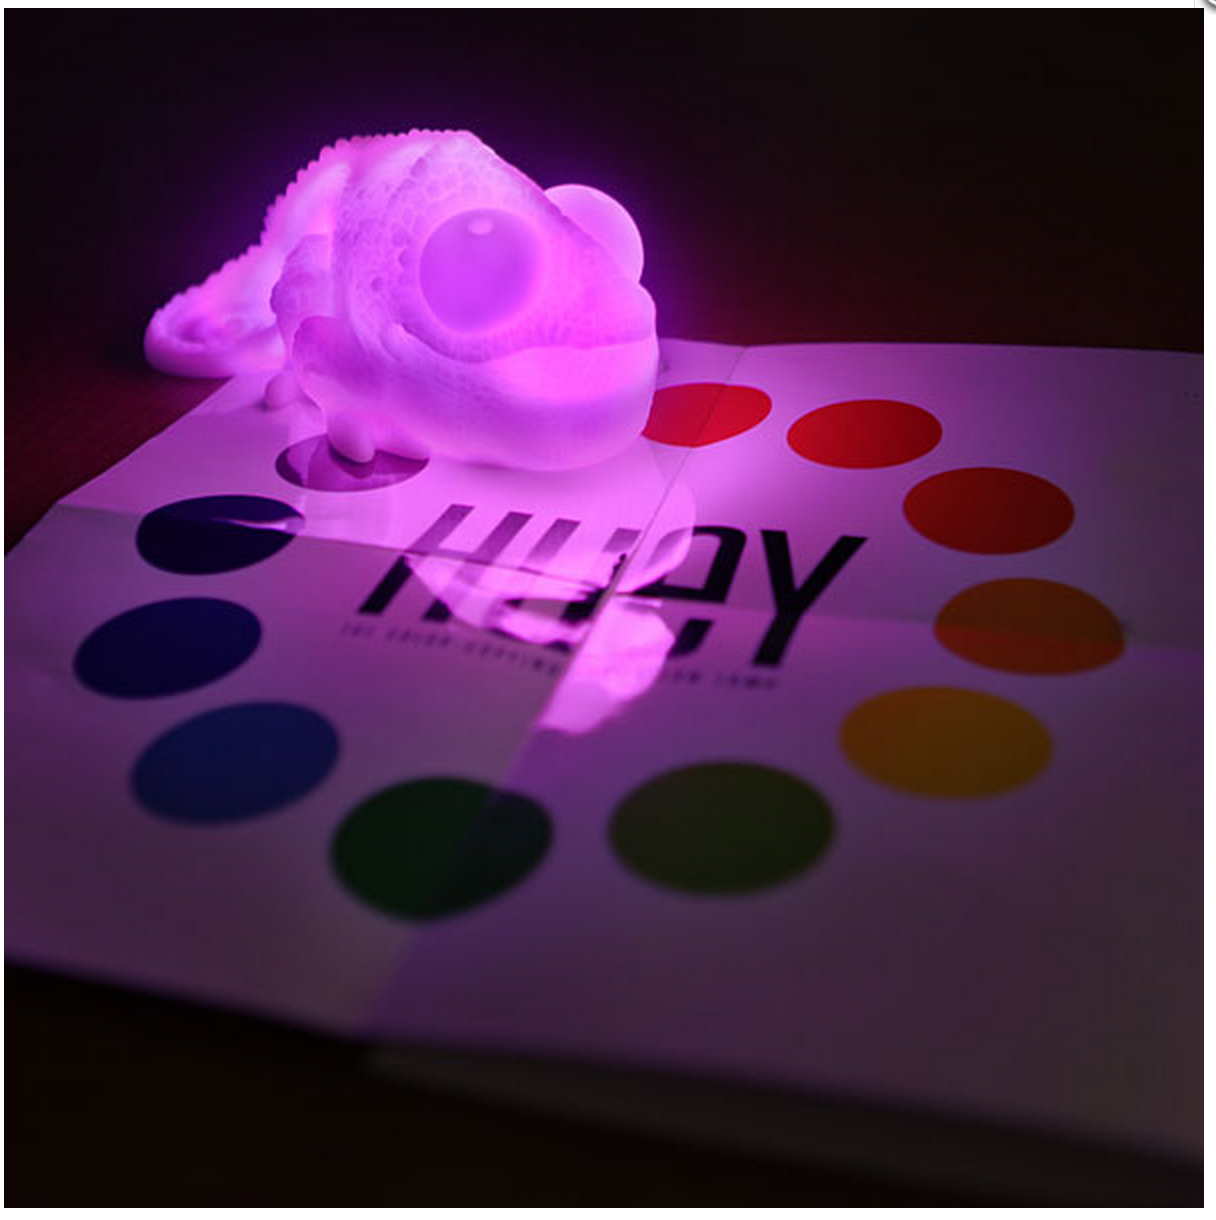 Huey the Color Copying Chameleon Lamp http://www.thinkgeek.com/product/dde2/